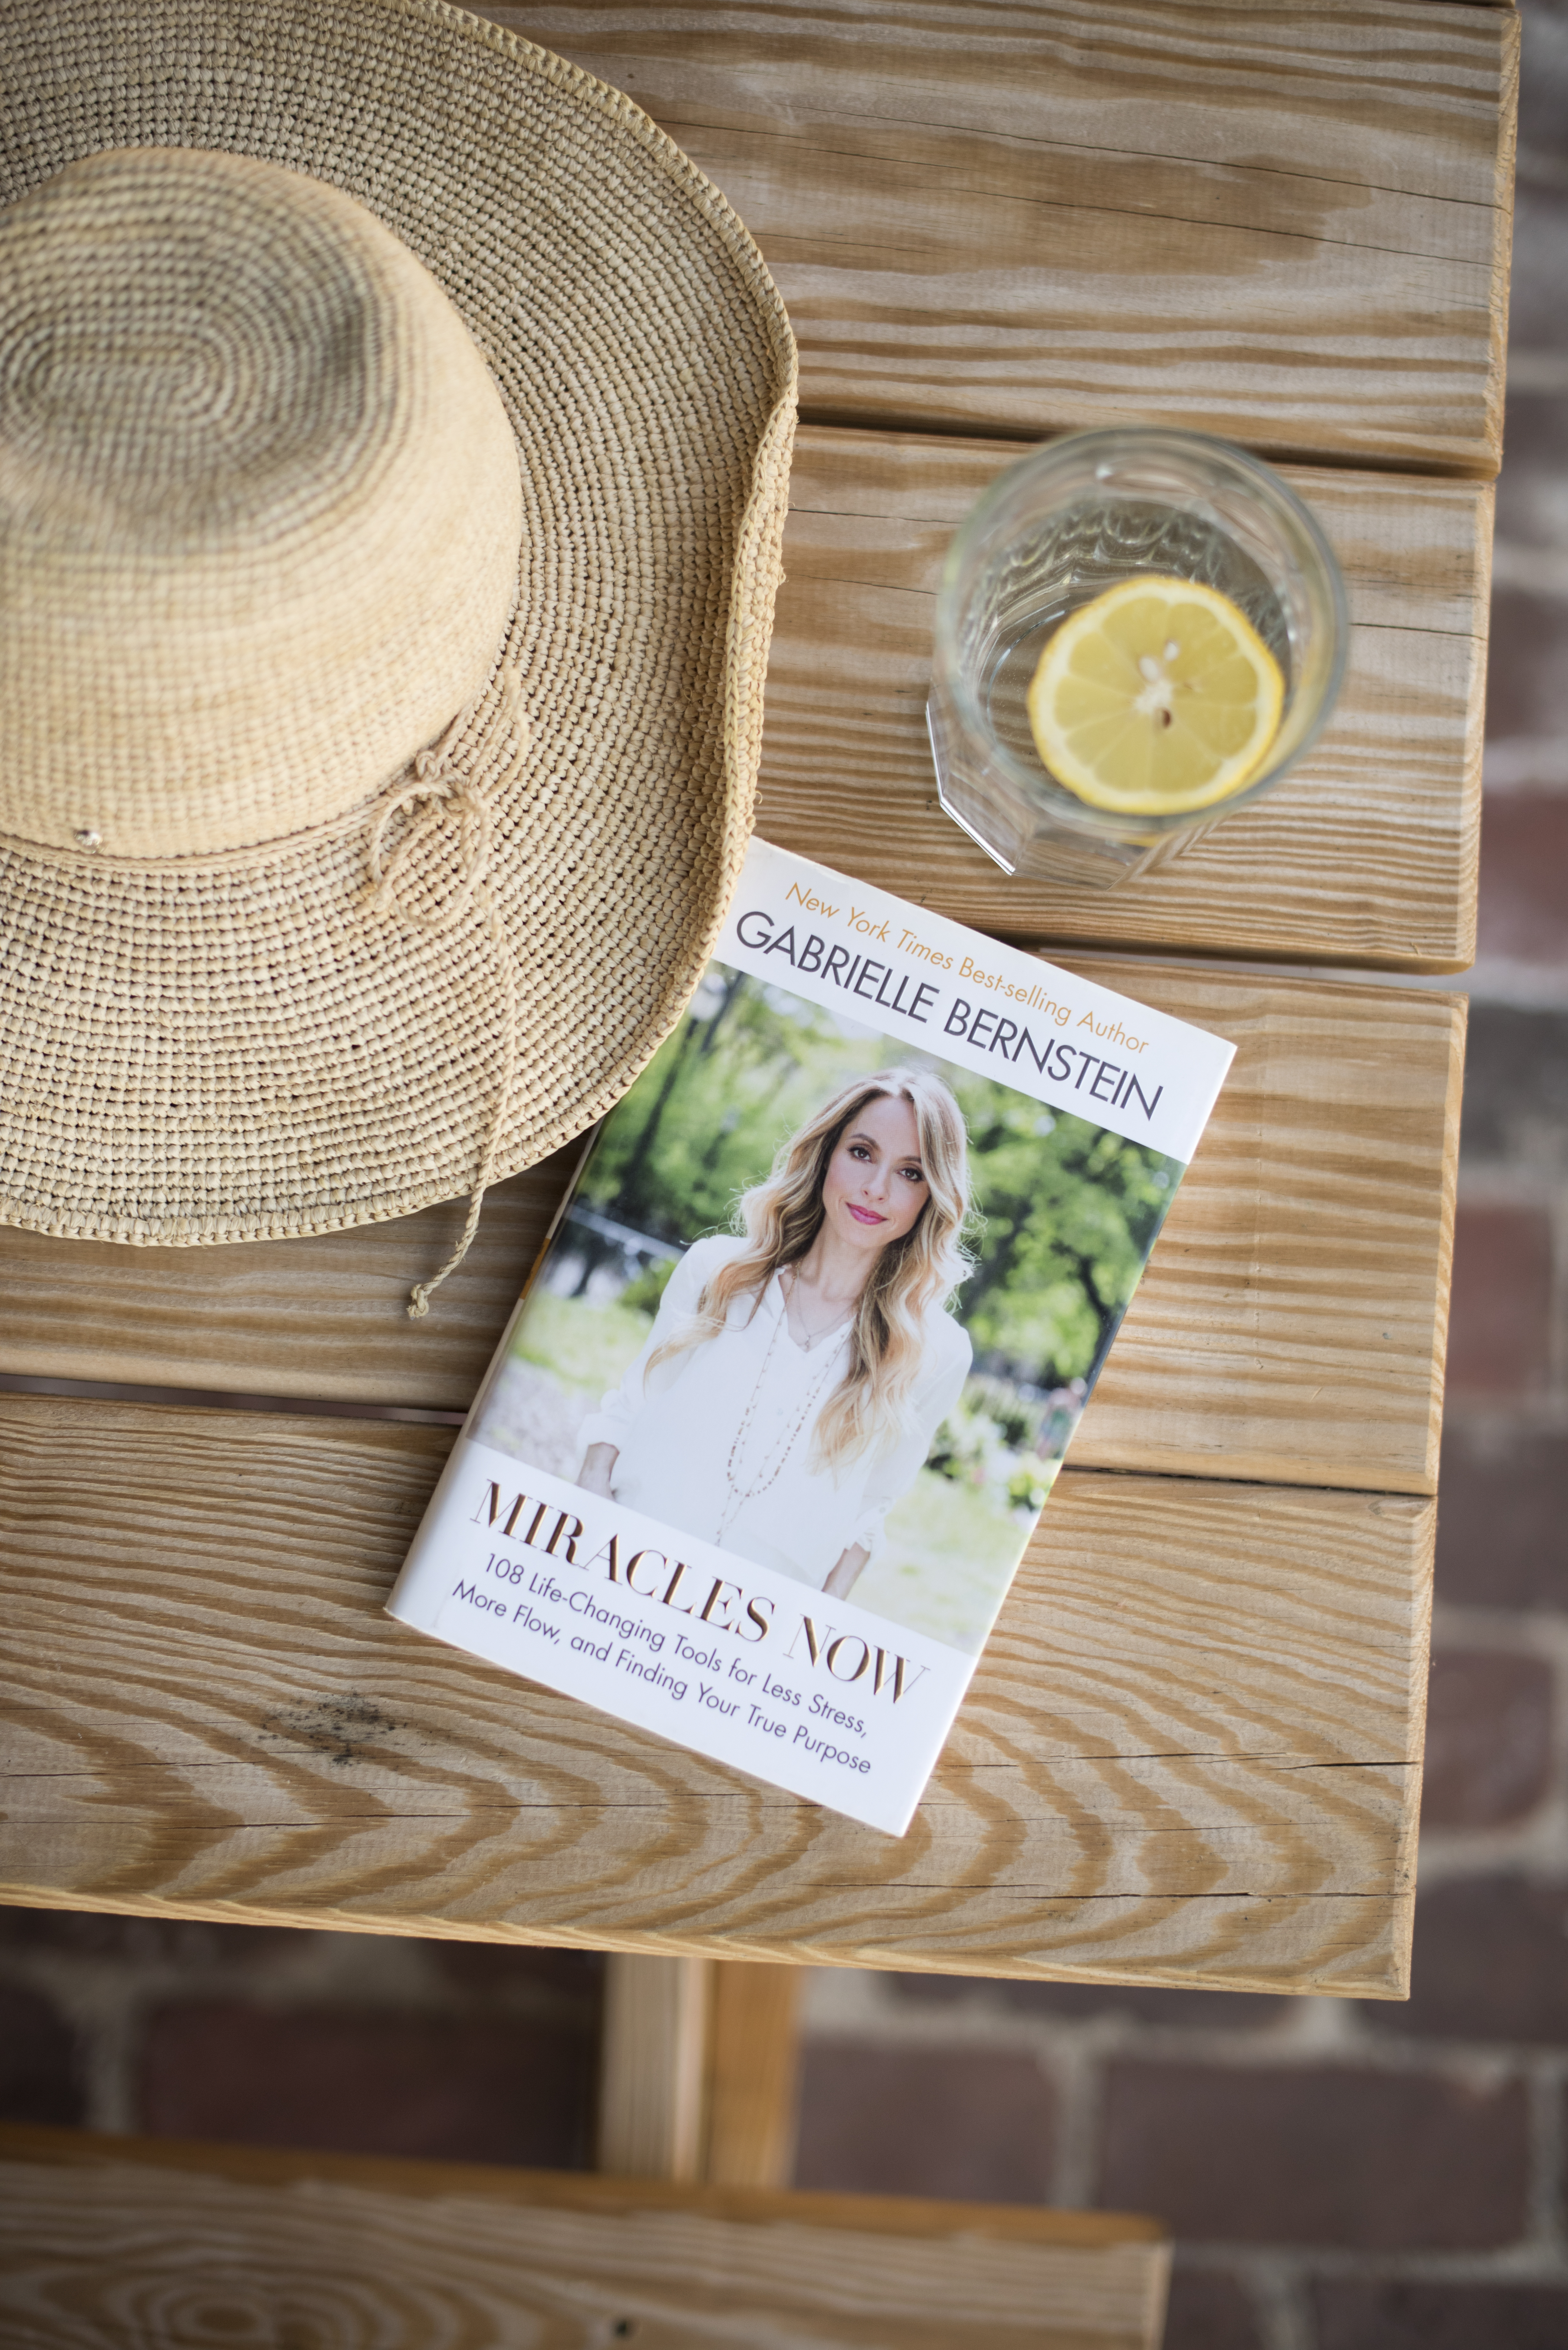 gabby bernstein miracles now book kundalini meditation